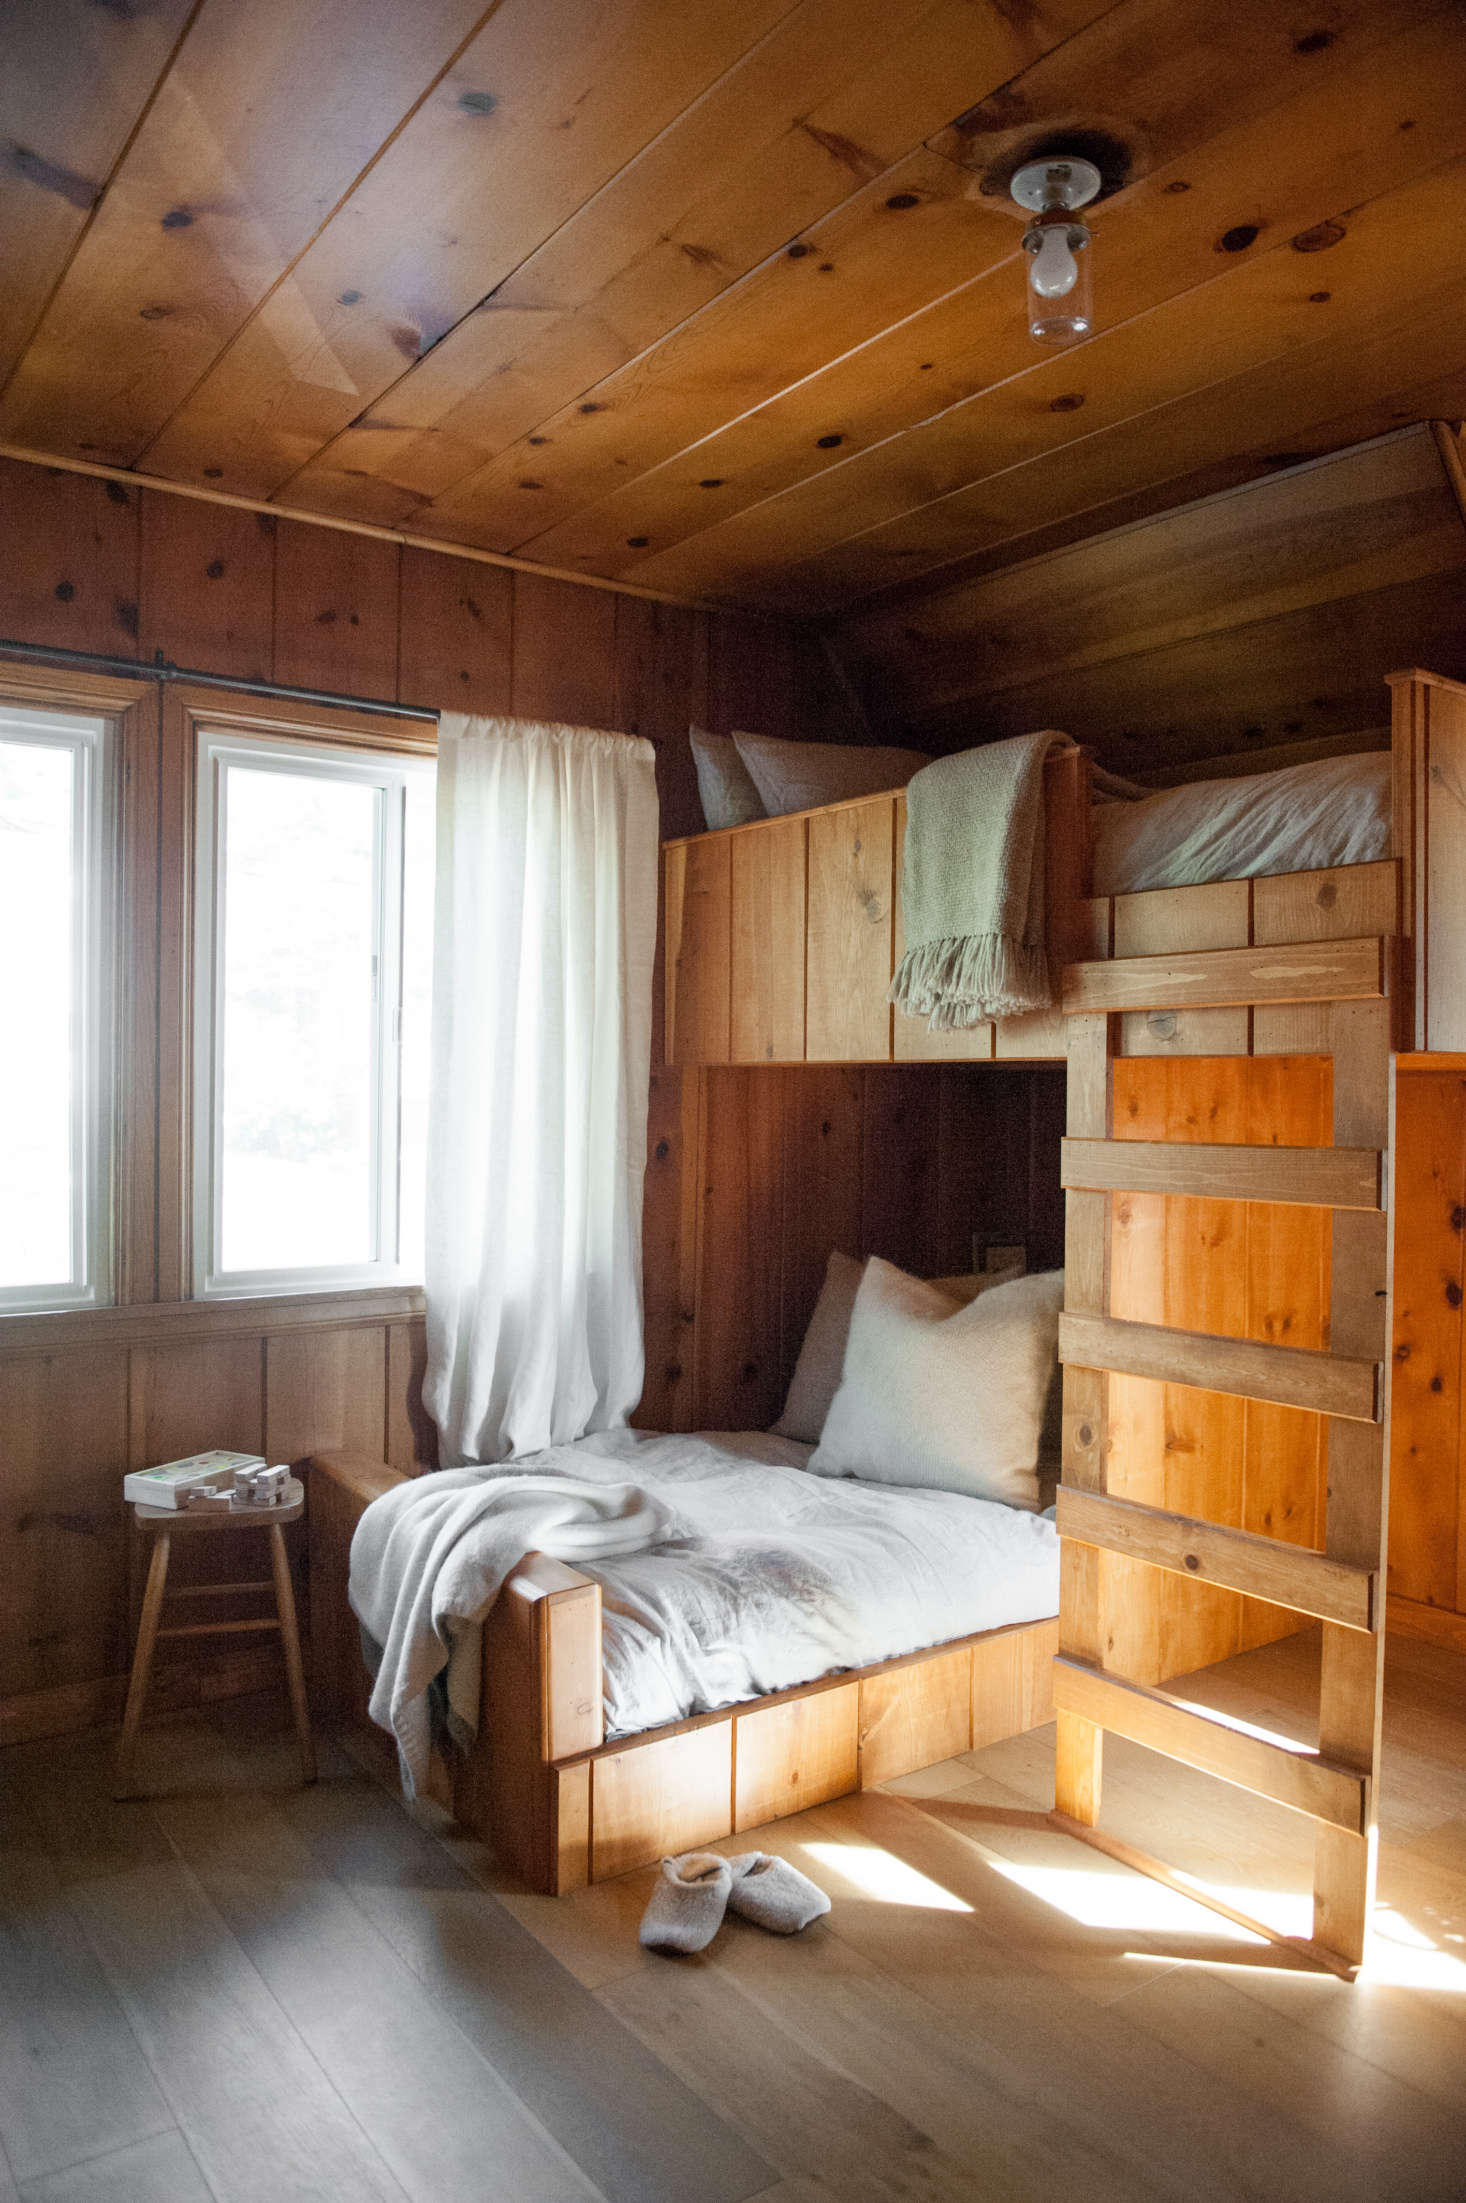 Lauren designed the custom bunk beds to continue the lines of the existing paneling.&#8